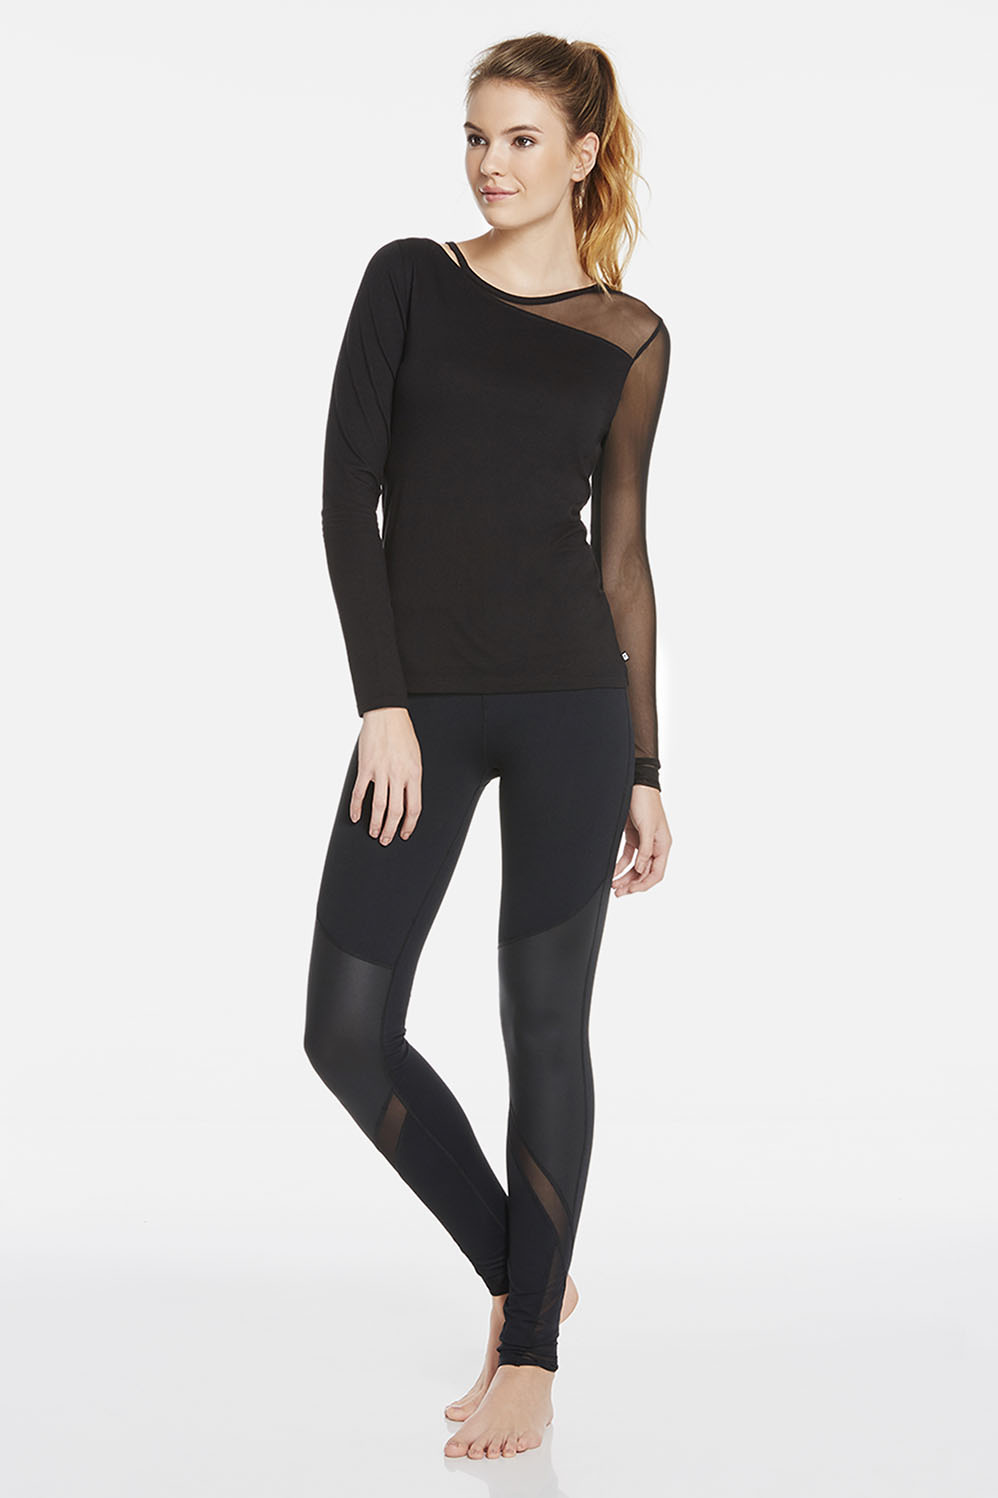 Bergamot Outfit - Get Great Athletic Wear At Fabletics